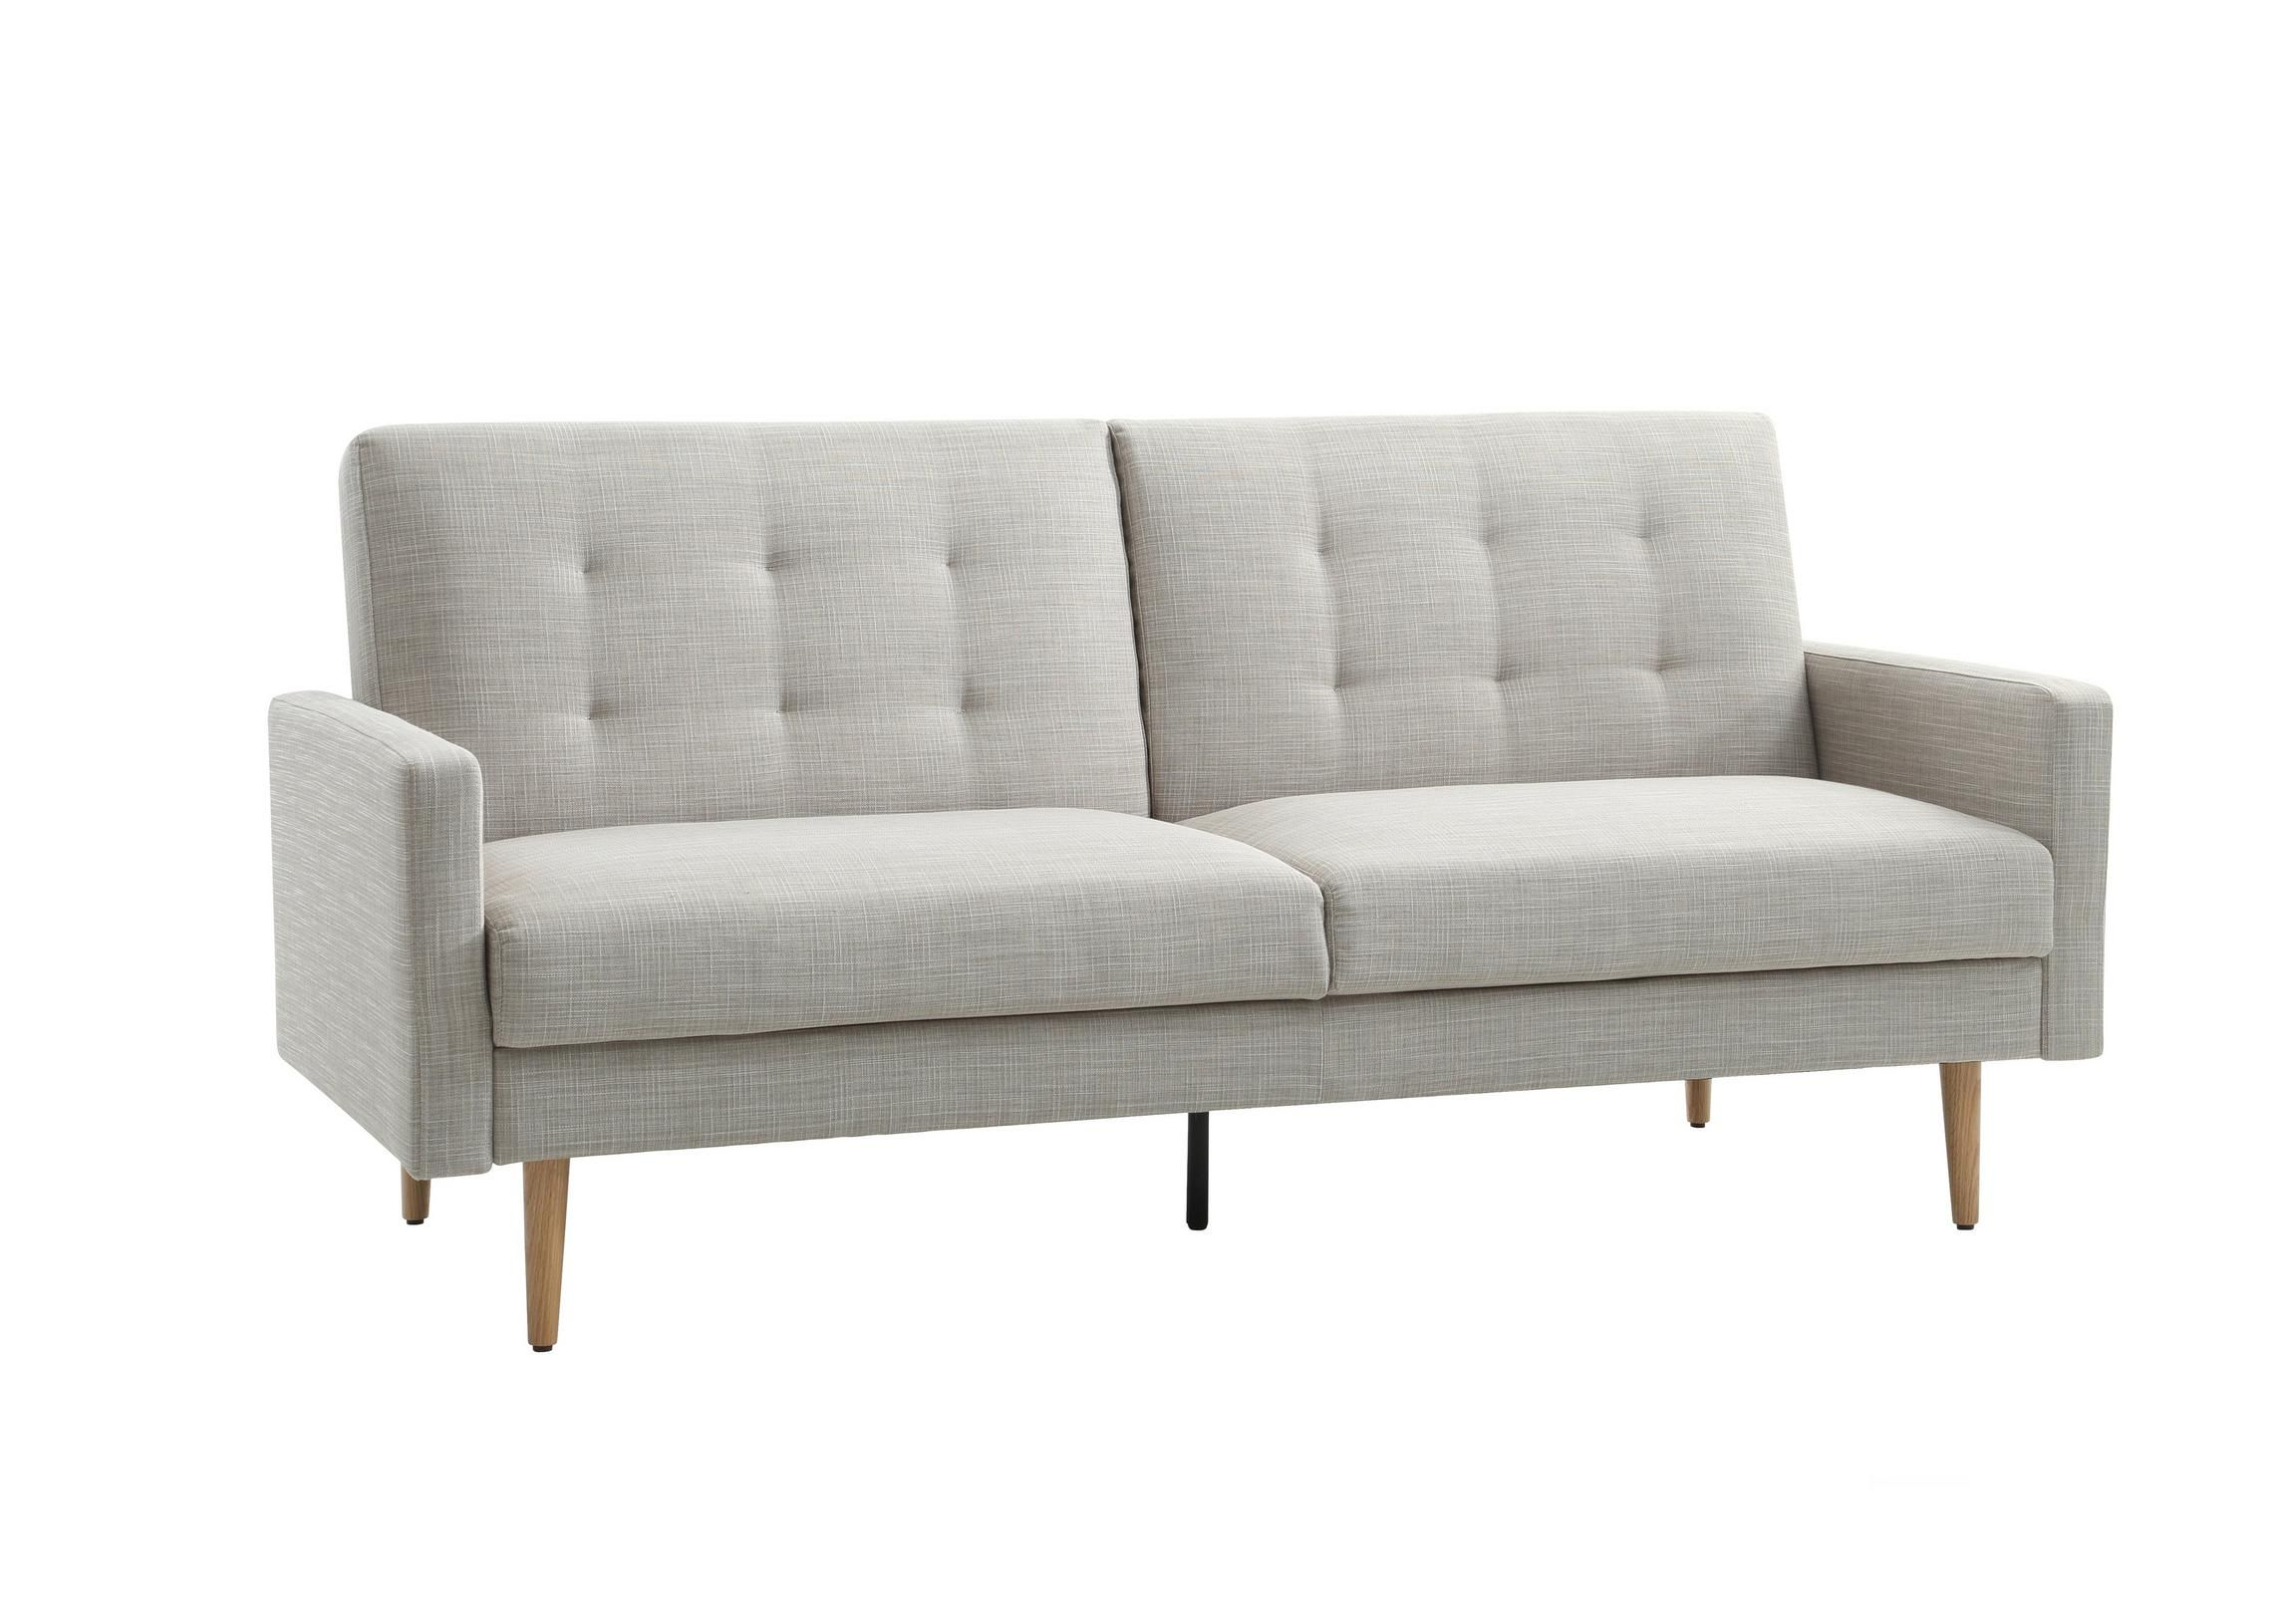 square sofa beds antique victorian and chairs contemporary bed with buttoned back high slim arms tapered wooden legs